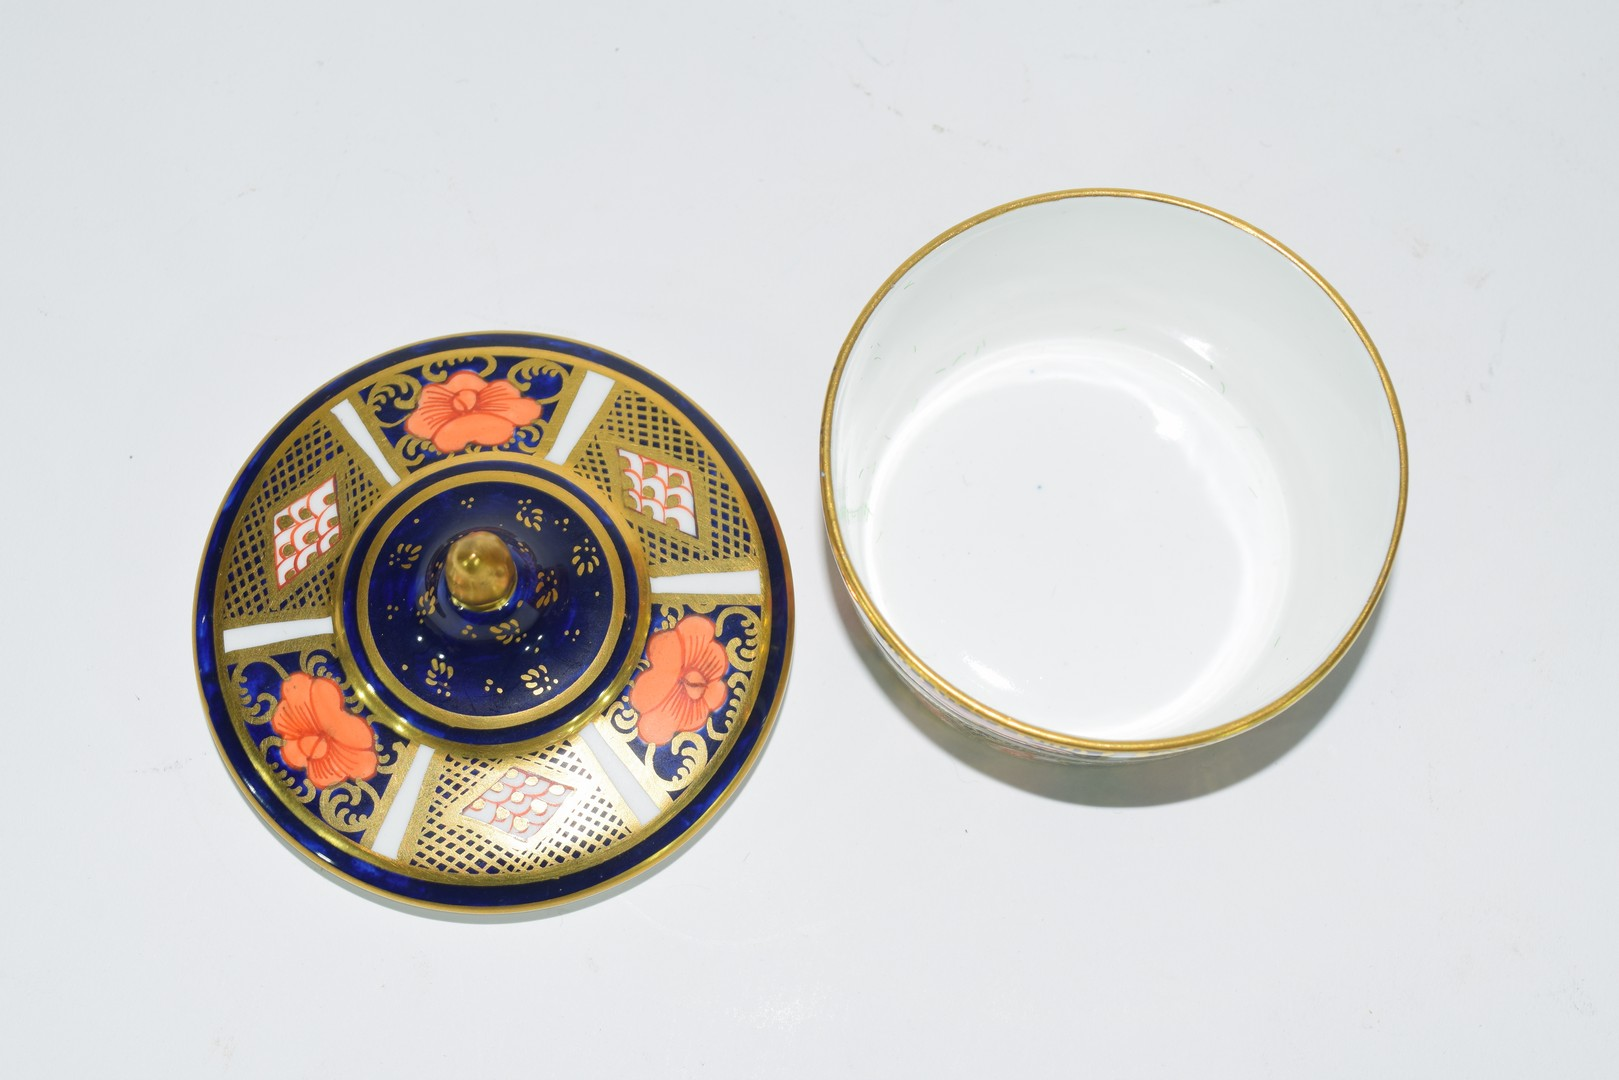 Group of Continental porcelains including a Vienna style cup and saucer - Image 9 of 12